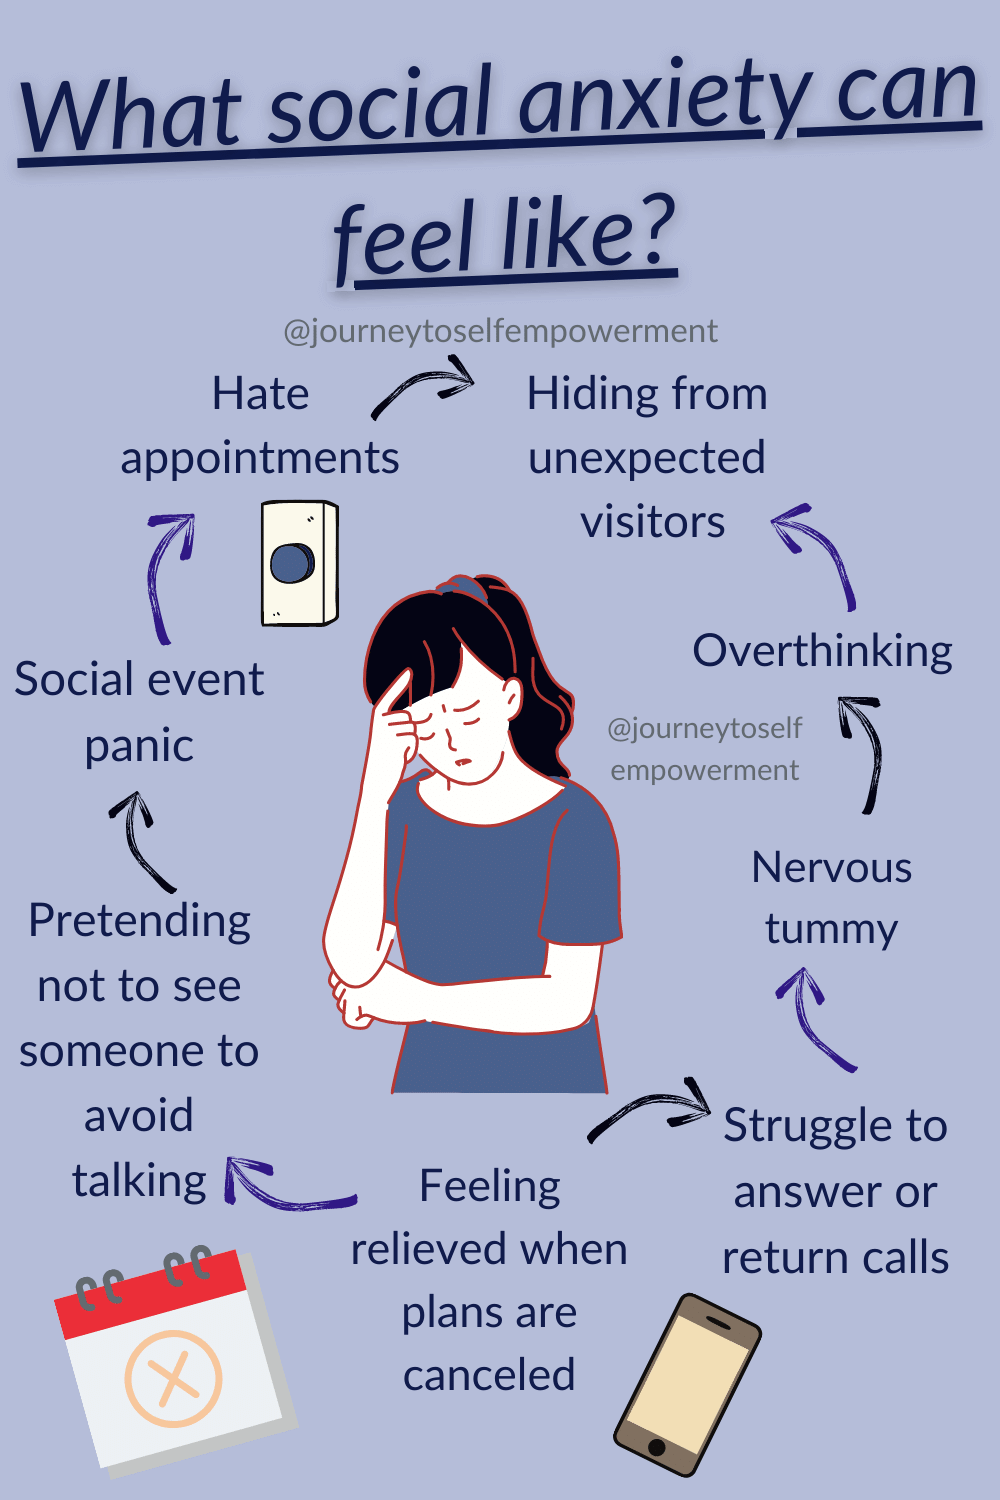 Text reading 'what social anxiety can feel like' with a woman wearing a blue shirt and black hair with her head in her hands and her arm folded across her stomach looking anxious